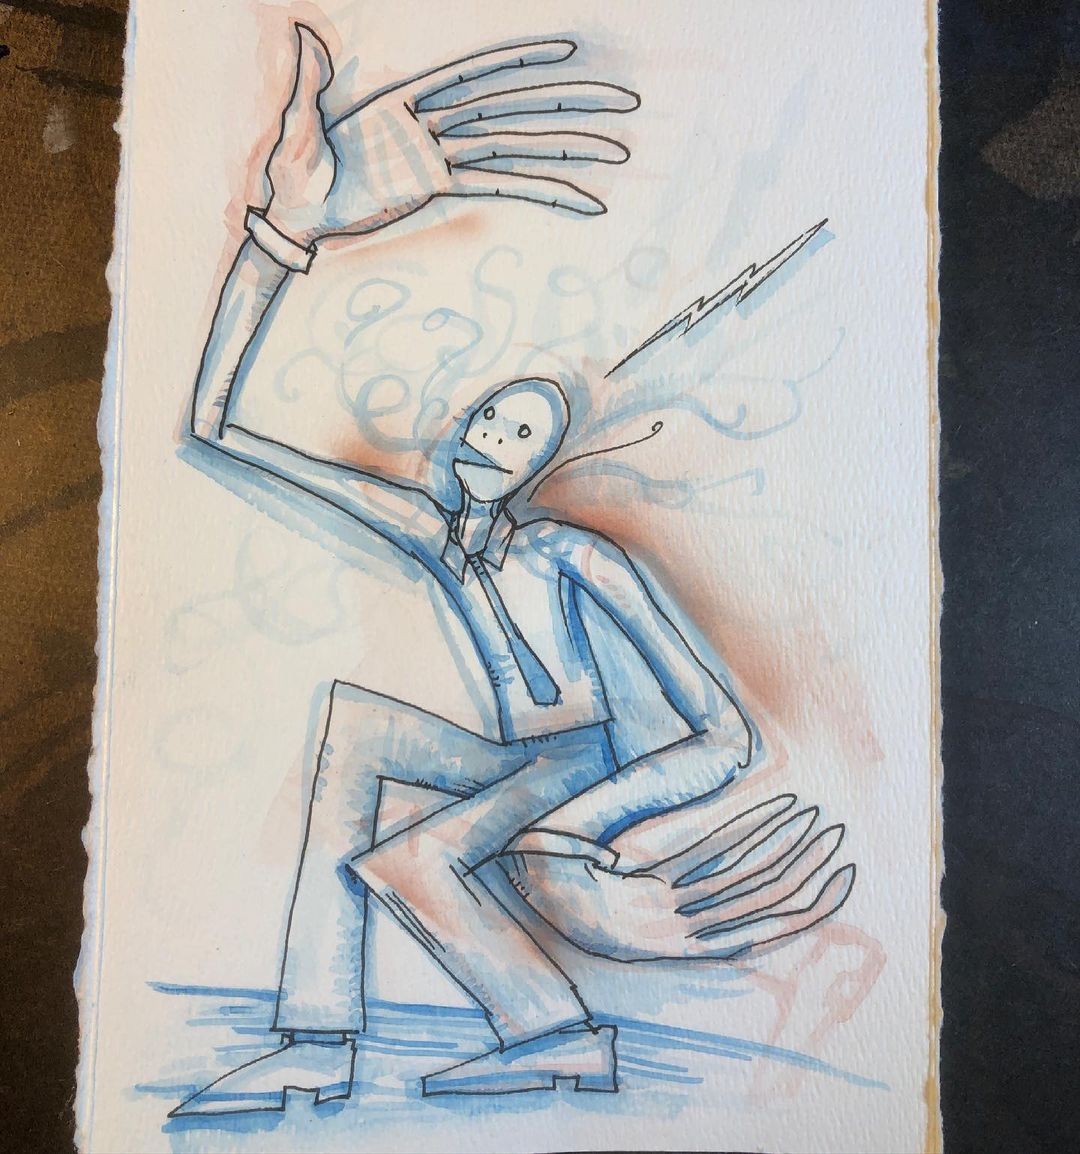 Subtle Dance Move - ink and watercolor drawing/painting